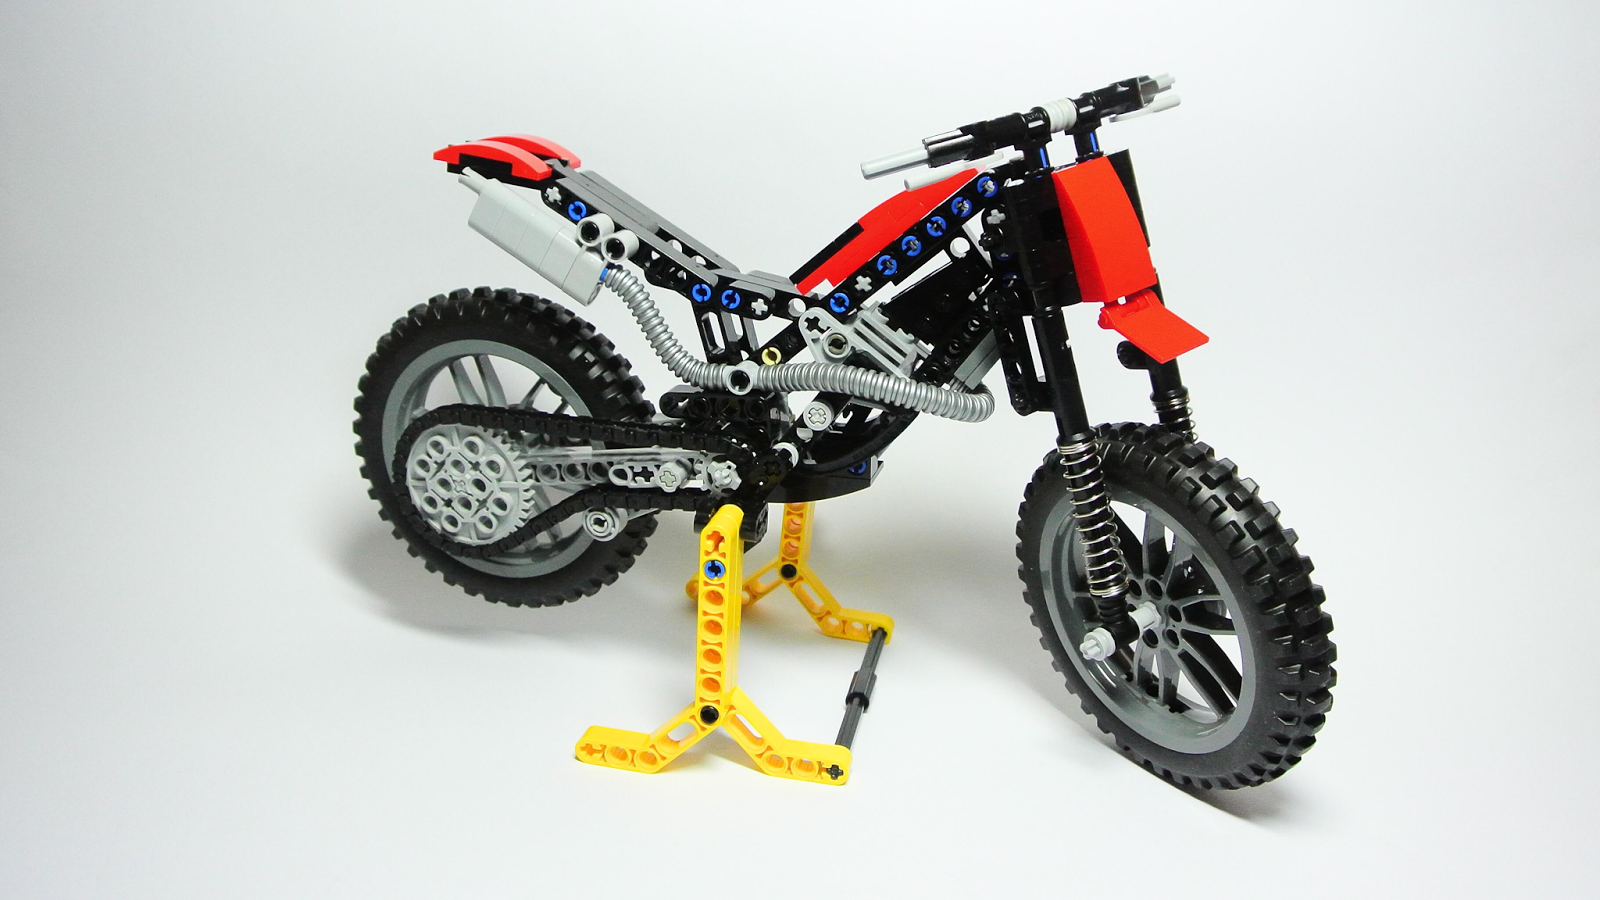 lego technic motorcycles trial motorcycle instructions. Black Bedroom Furniture Sets. Home Design Ideas